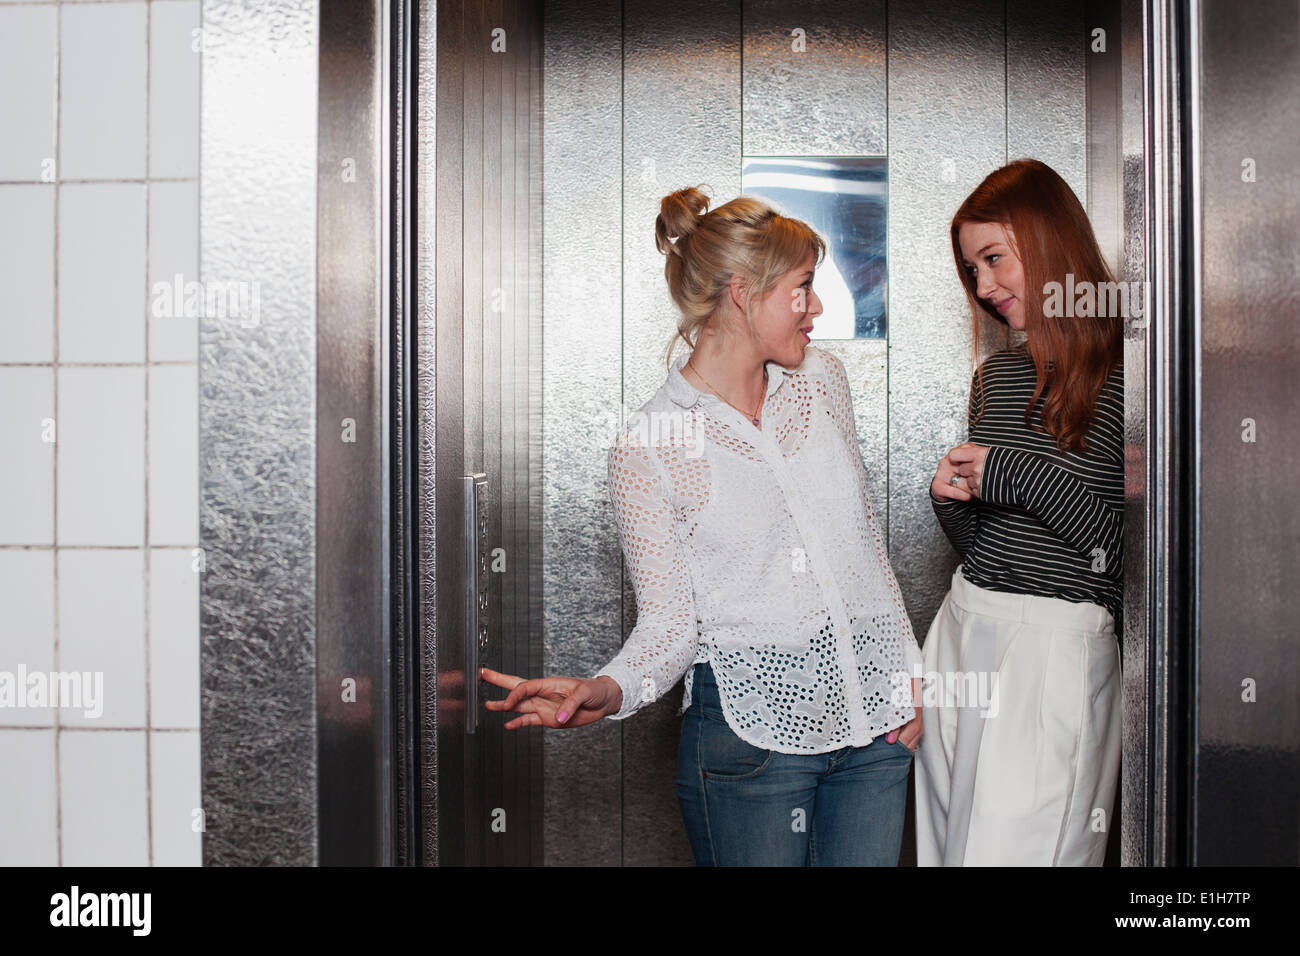 Young women in lift - Stock Image